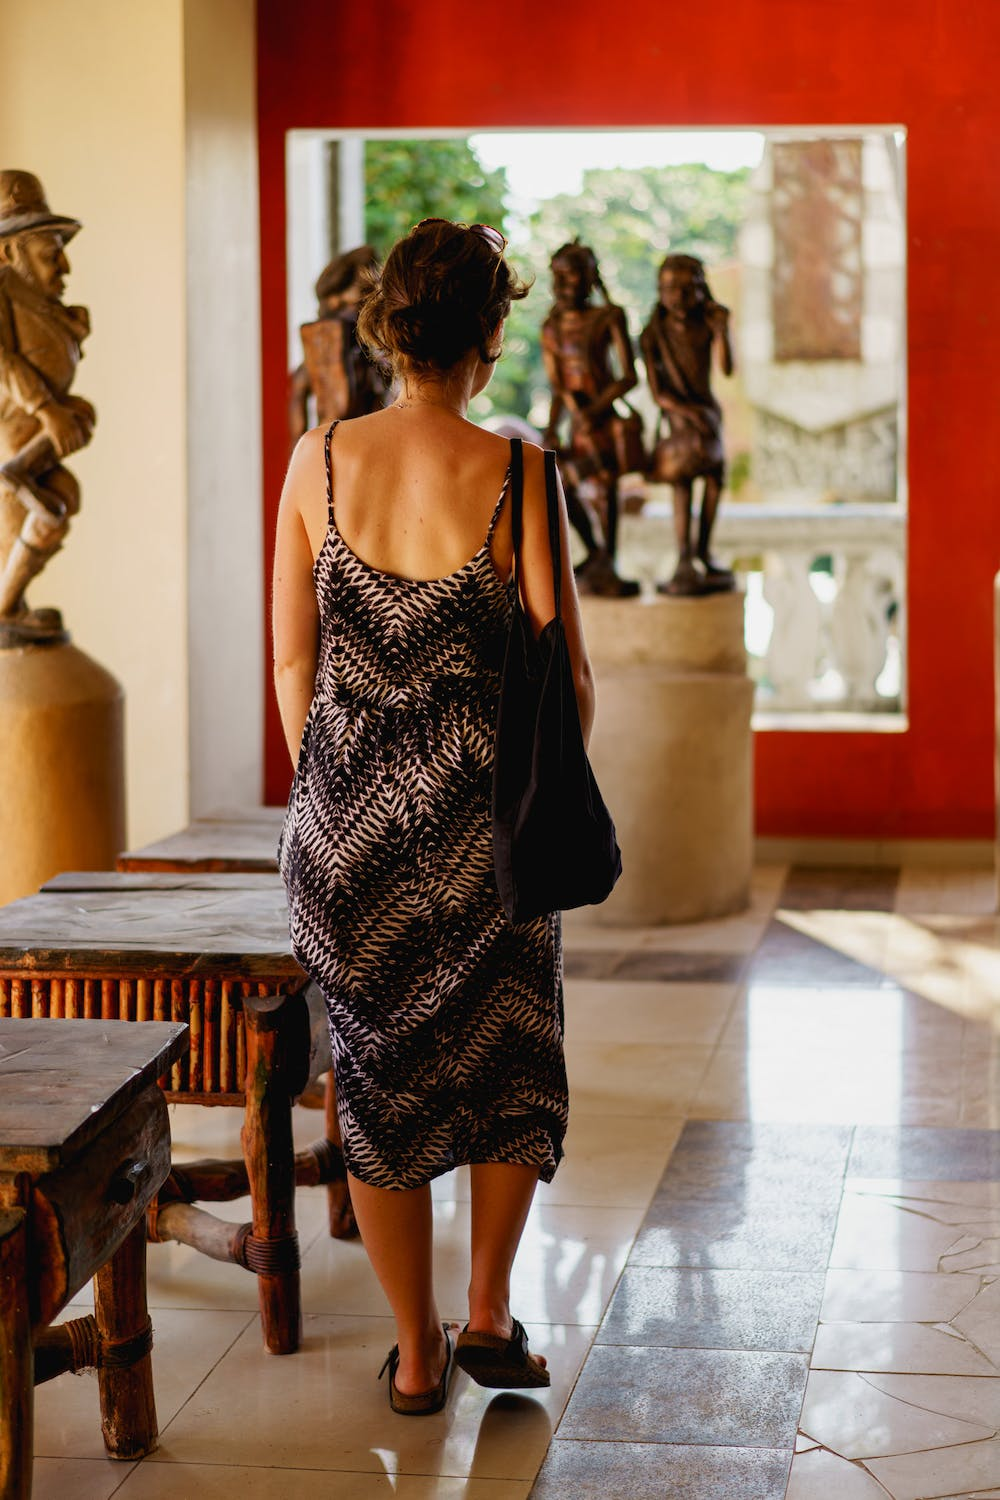 Girl in a dress walking in a hallway of Haitian wooden carving statues at Castillo Mundo King